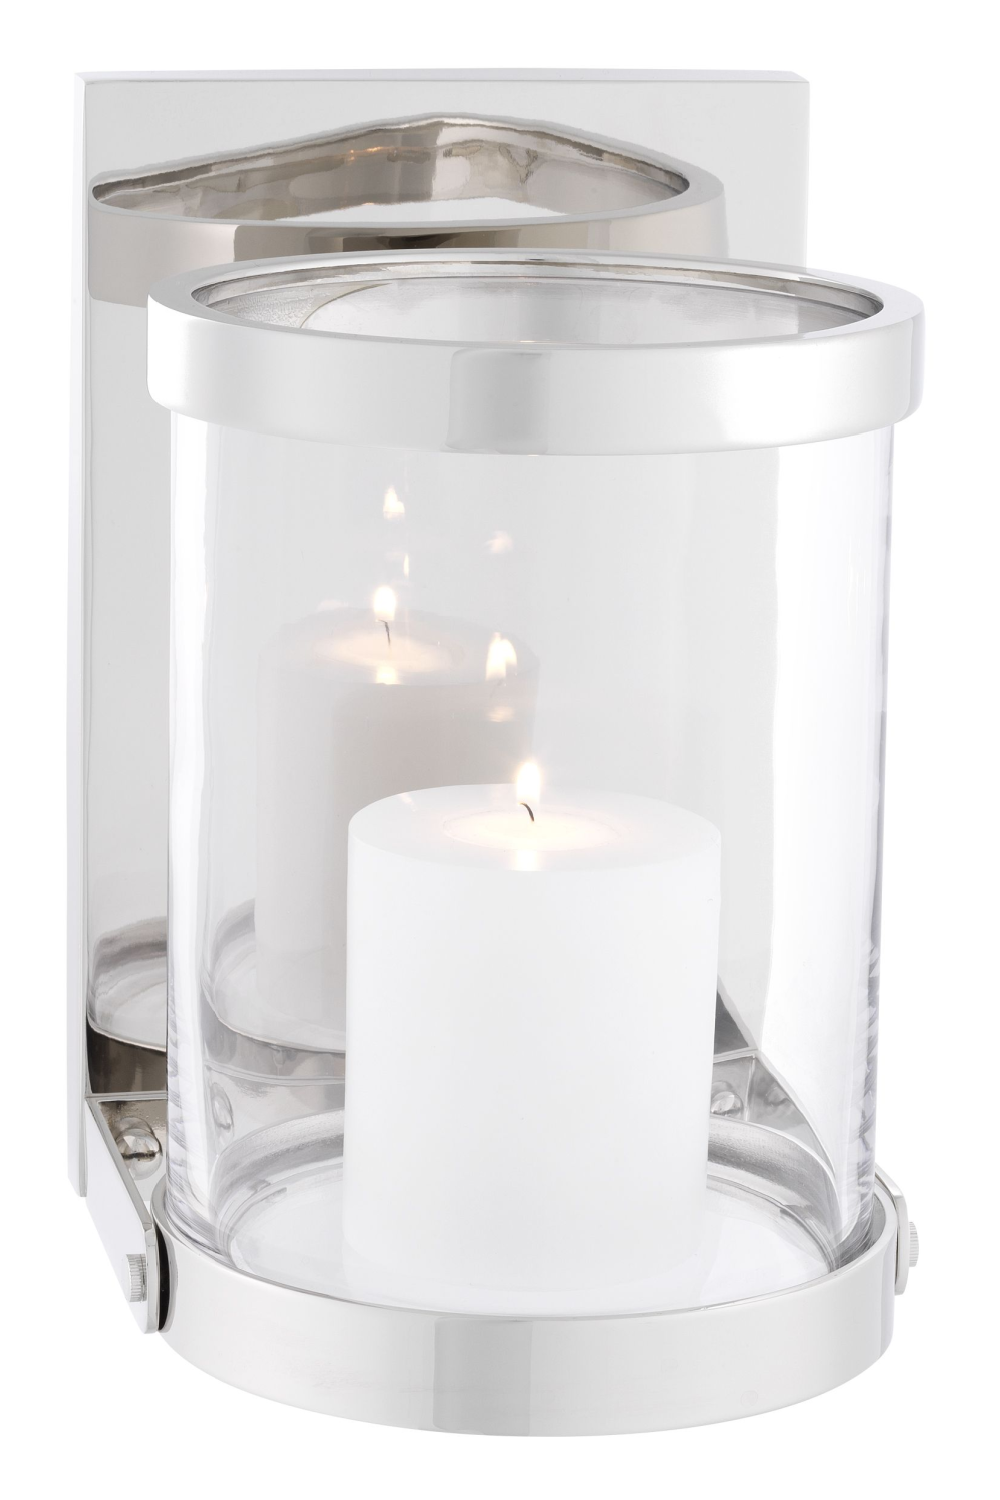 (Open-Box) Pillar Candle Wall Hurricane | Eichholtz Dominic | OROA